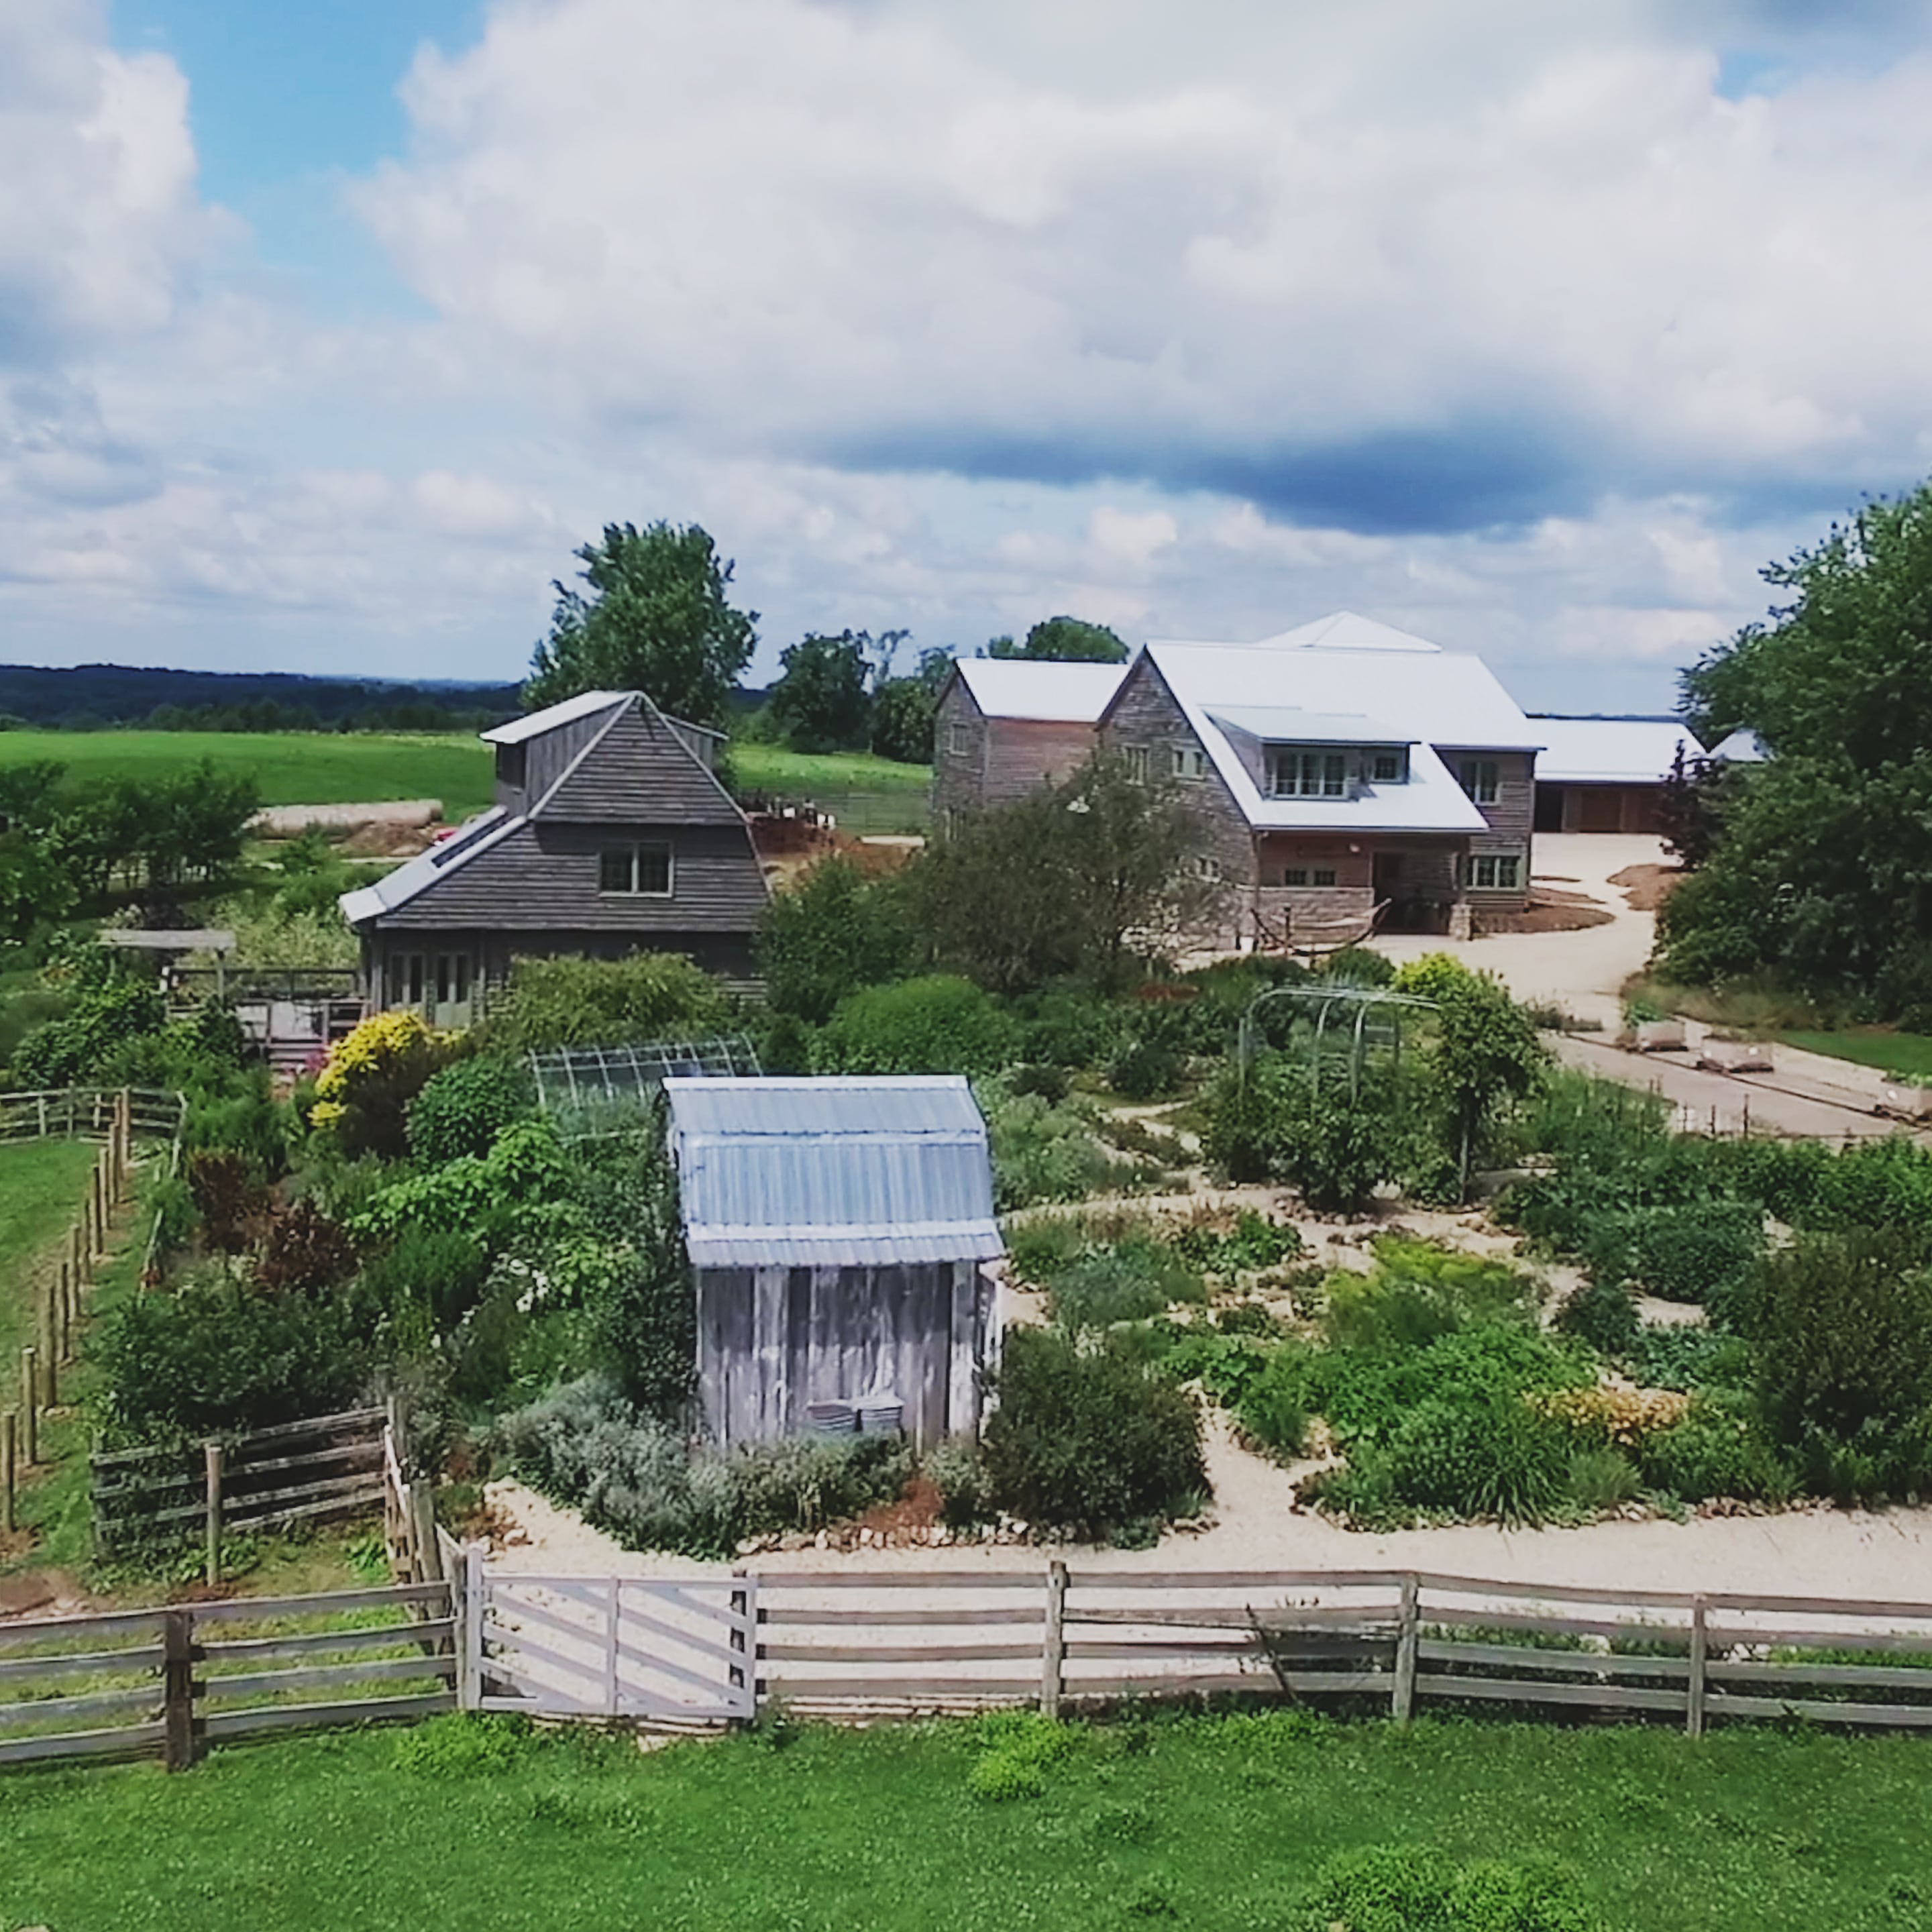 Our Farm, Our Home